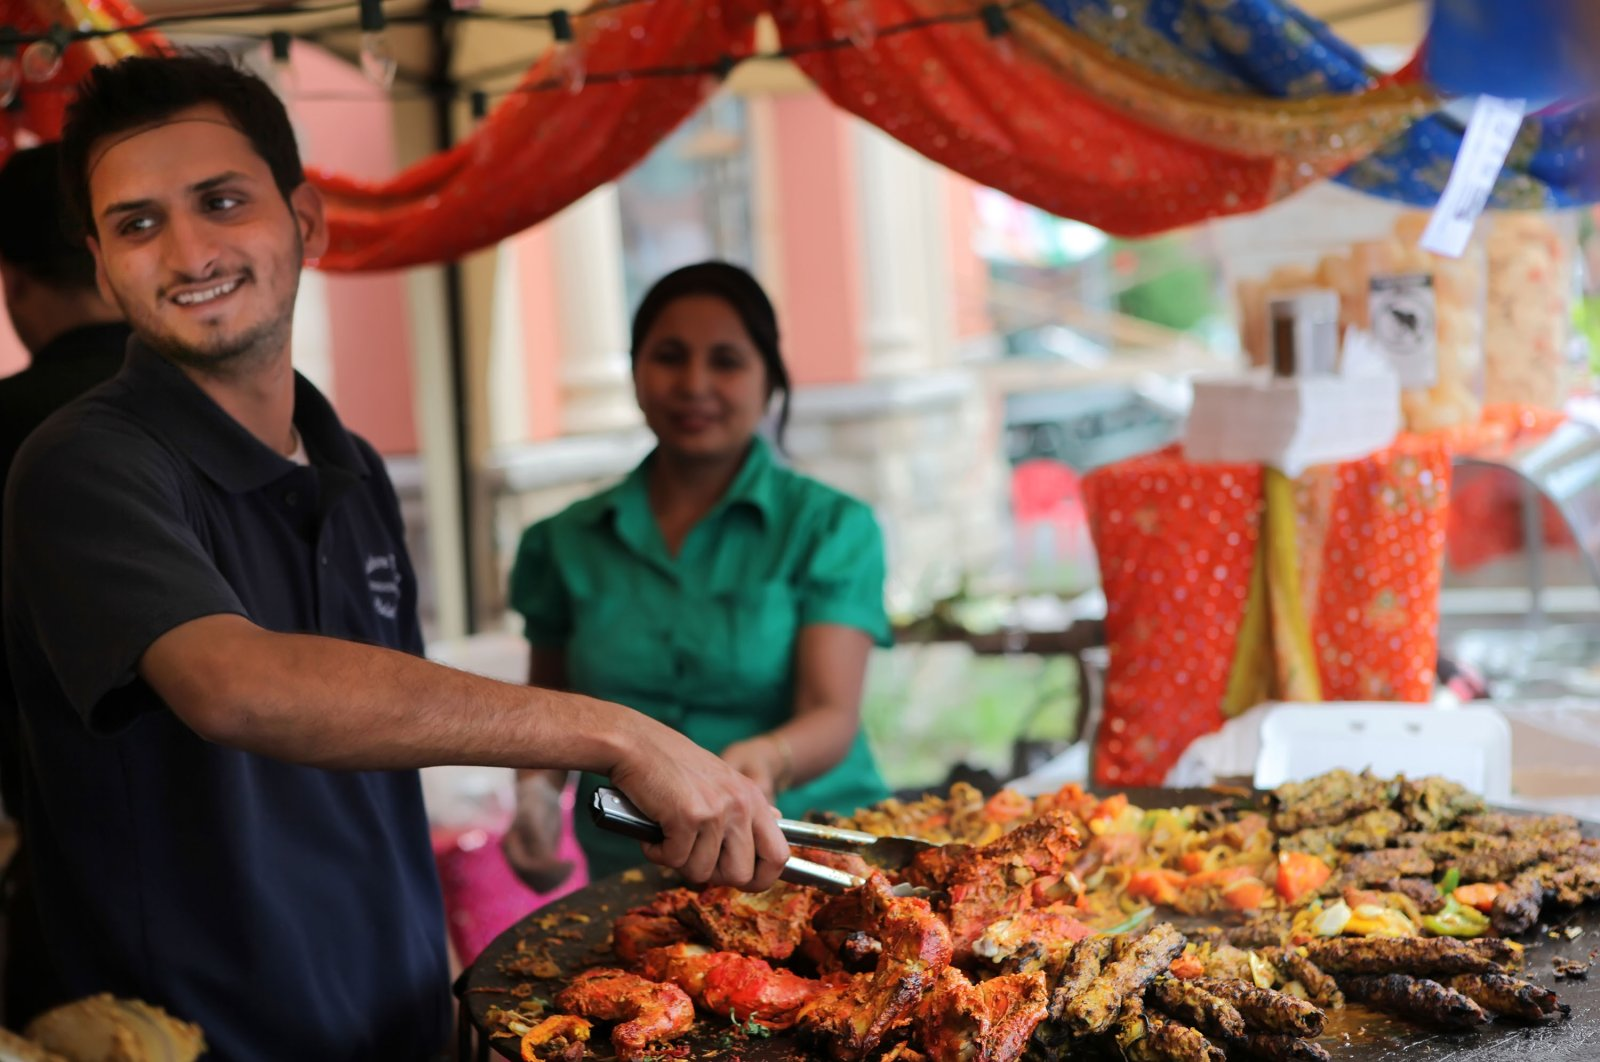 A Pakistani chef cooks kabobs and other Lahori delicacies on large kataks (hot plates) at a Pakistani Restaurant in Toronto, Ontario, Canada, on Aug. 23, 2009. (Getty Images)